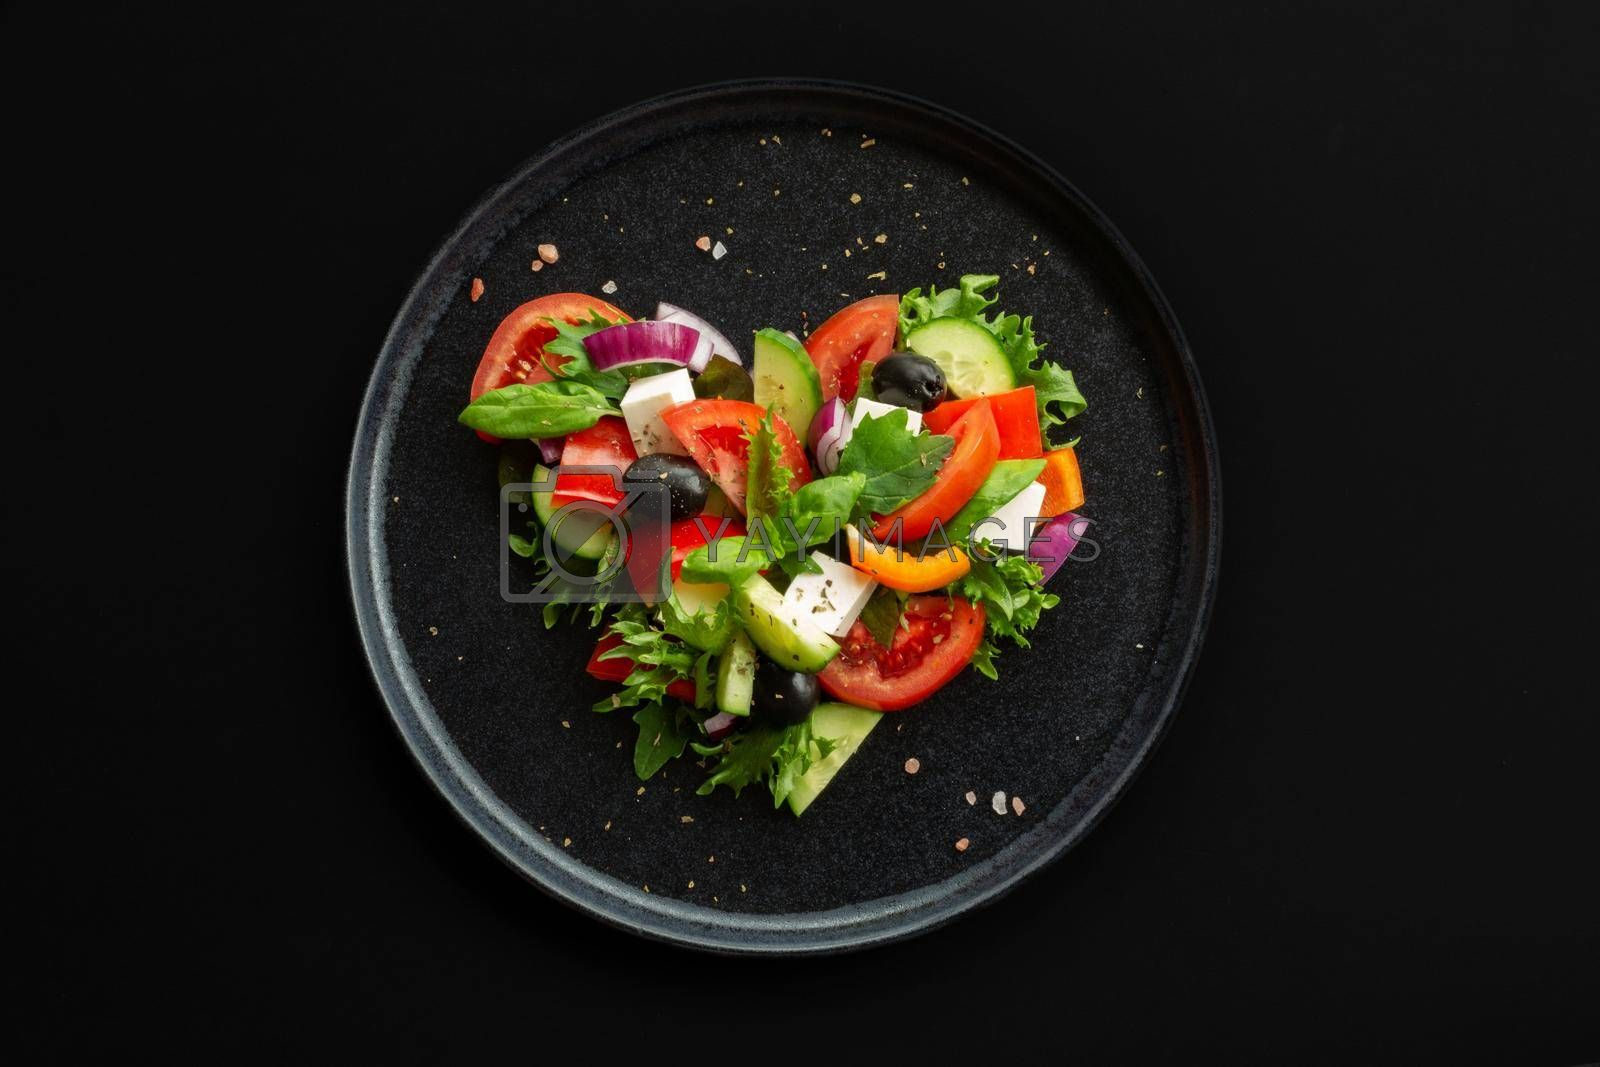 Greek salad in heart shape love food concept, black stone luxury plate, top view flat lay design, black background